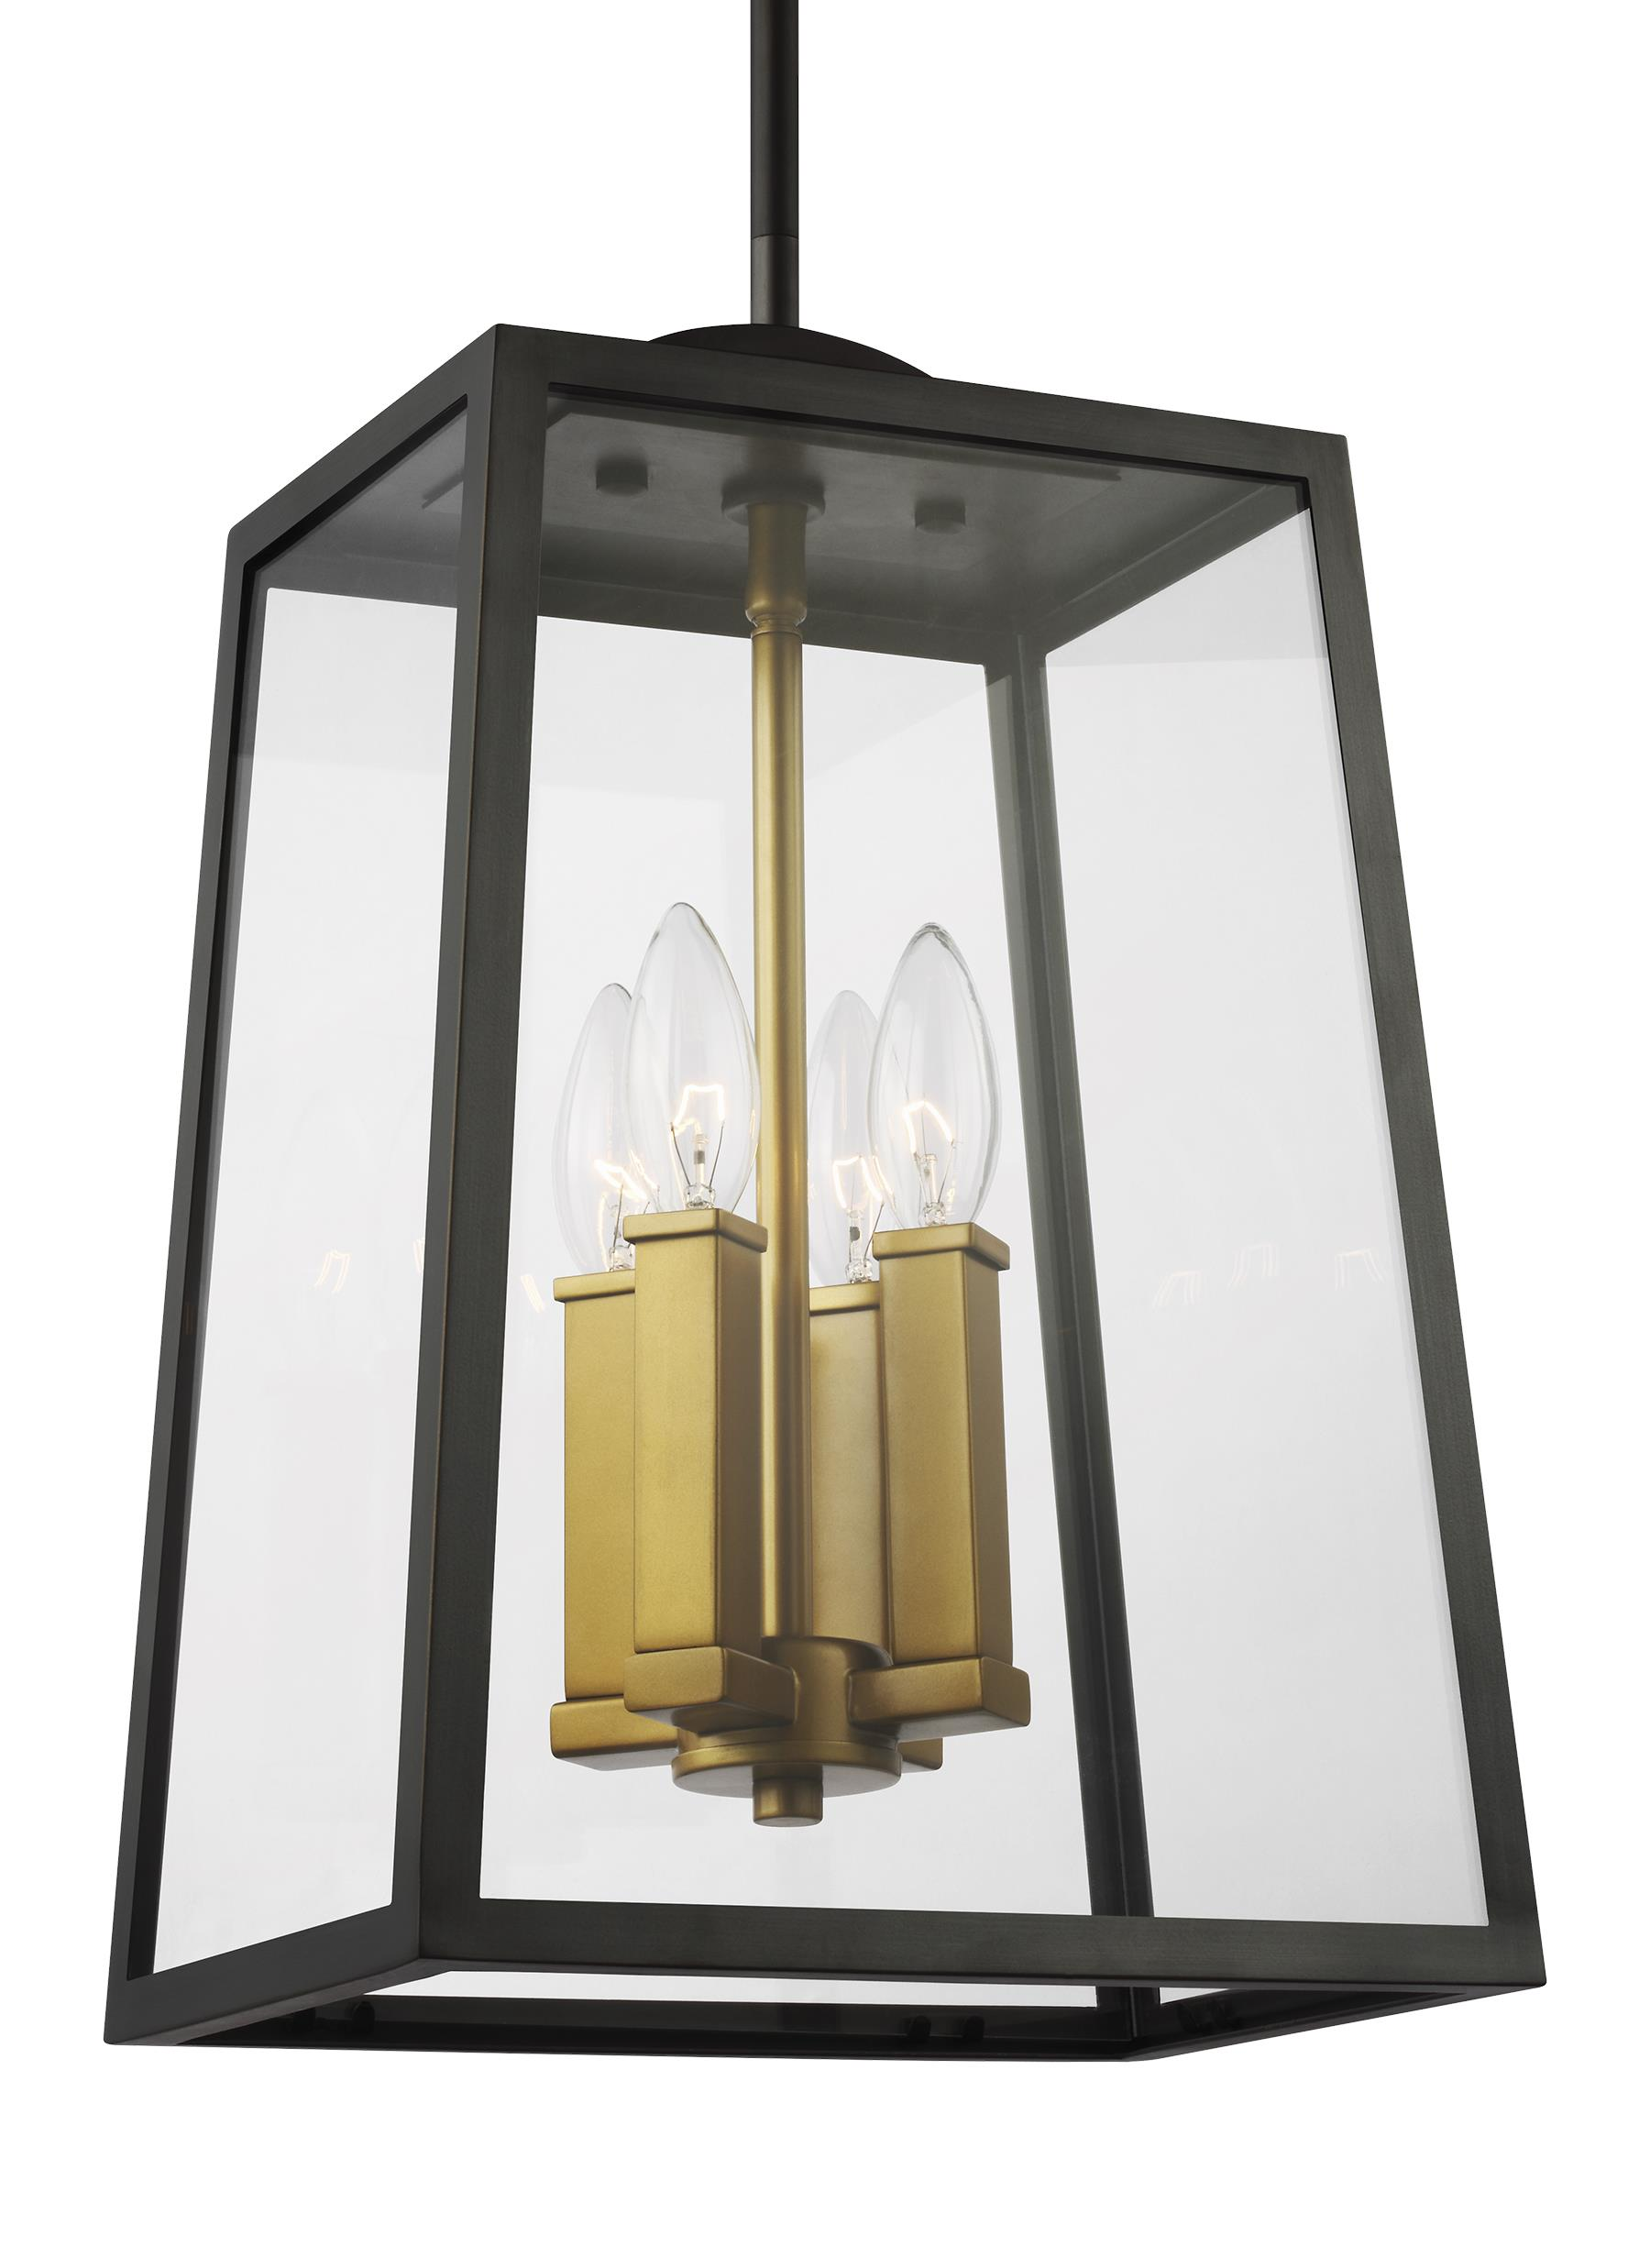 clear attachment single three kitchen islands chandelier glass design nz fixture lantern ideas chrome light lighting pendants bronze lights inspirational island country of style lamps modern pendant full bulbs above black size for table best